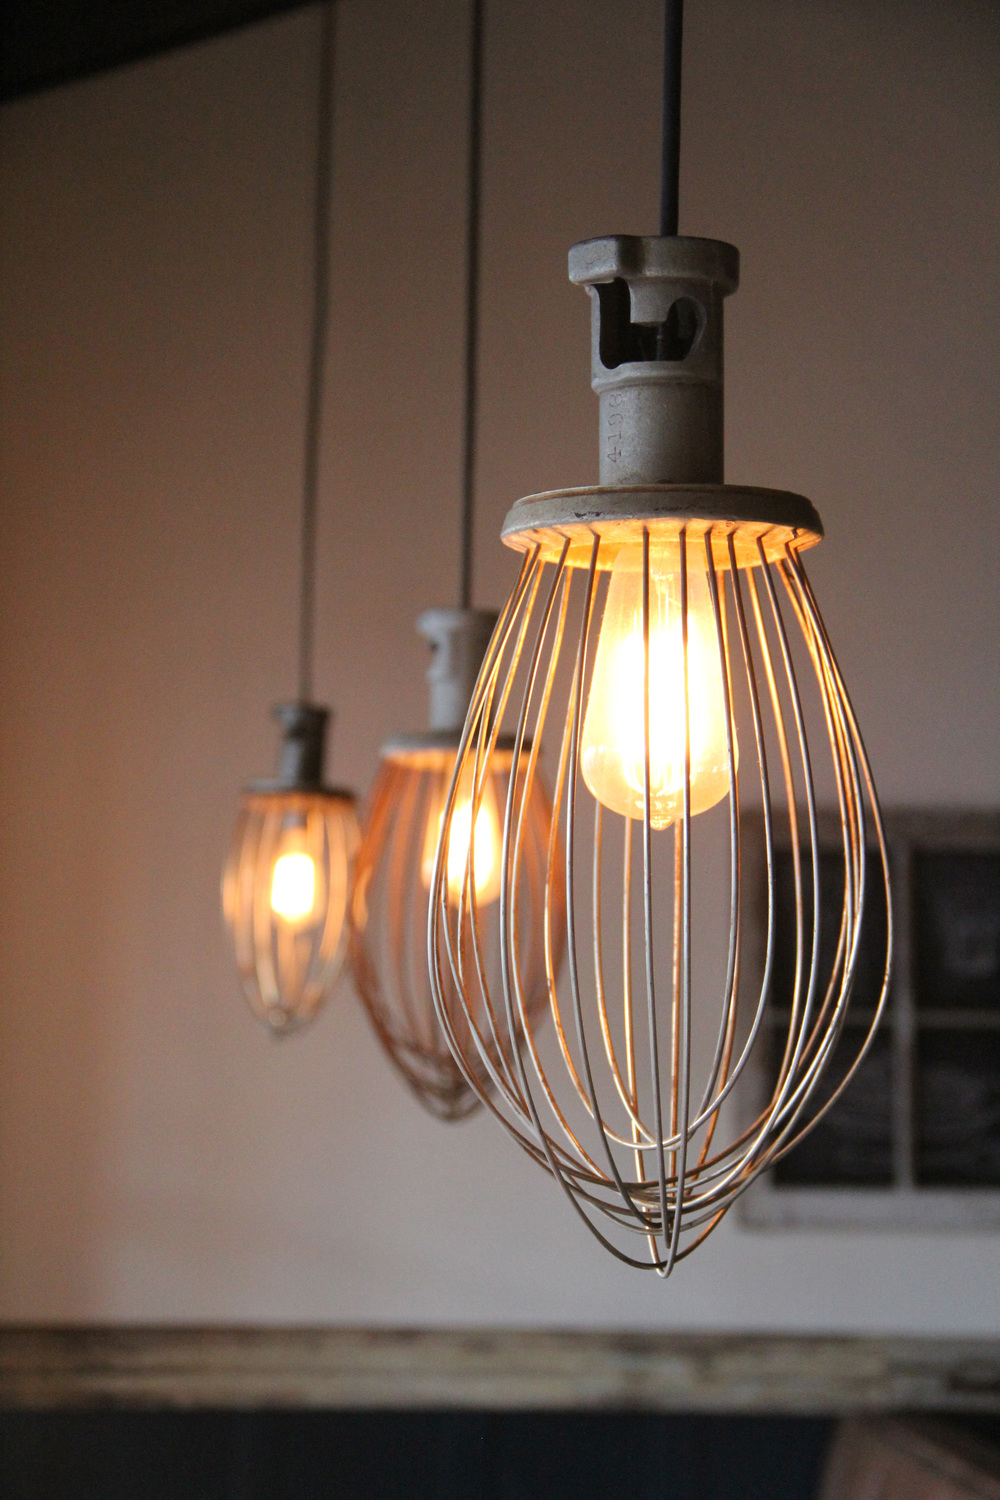 These lights were once industrial whisks, simply wired to hold a light socket.